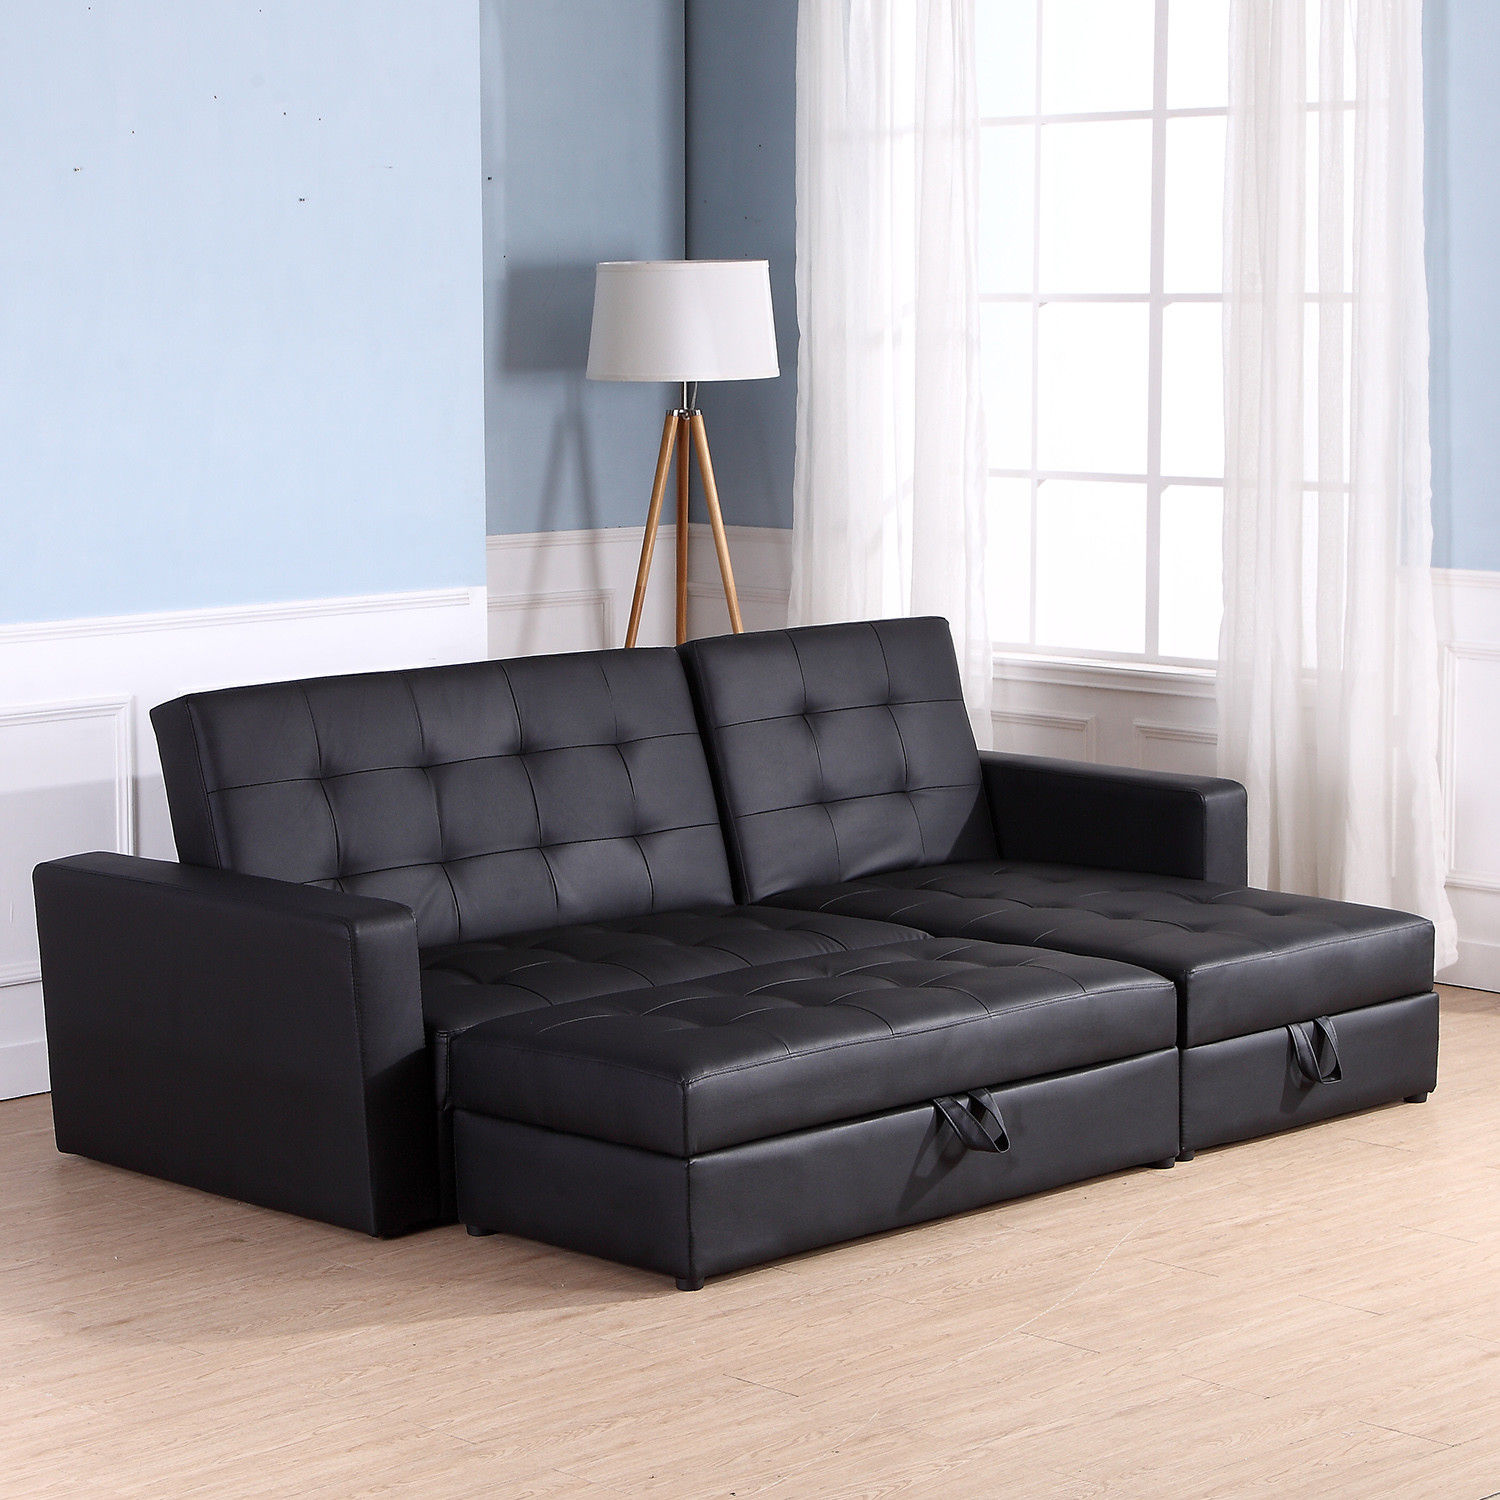 Sofa Bed Storage Sleeper Chaise Loveseat Couch Sectional